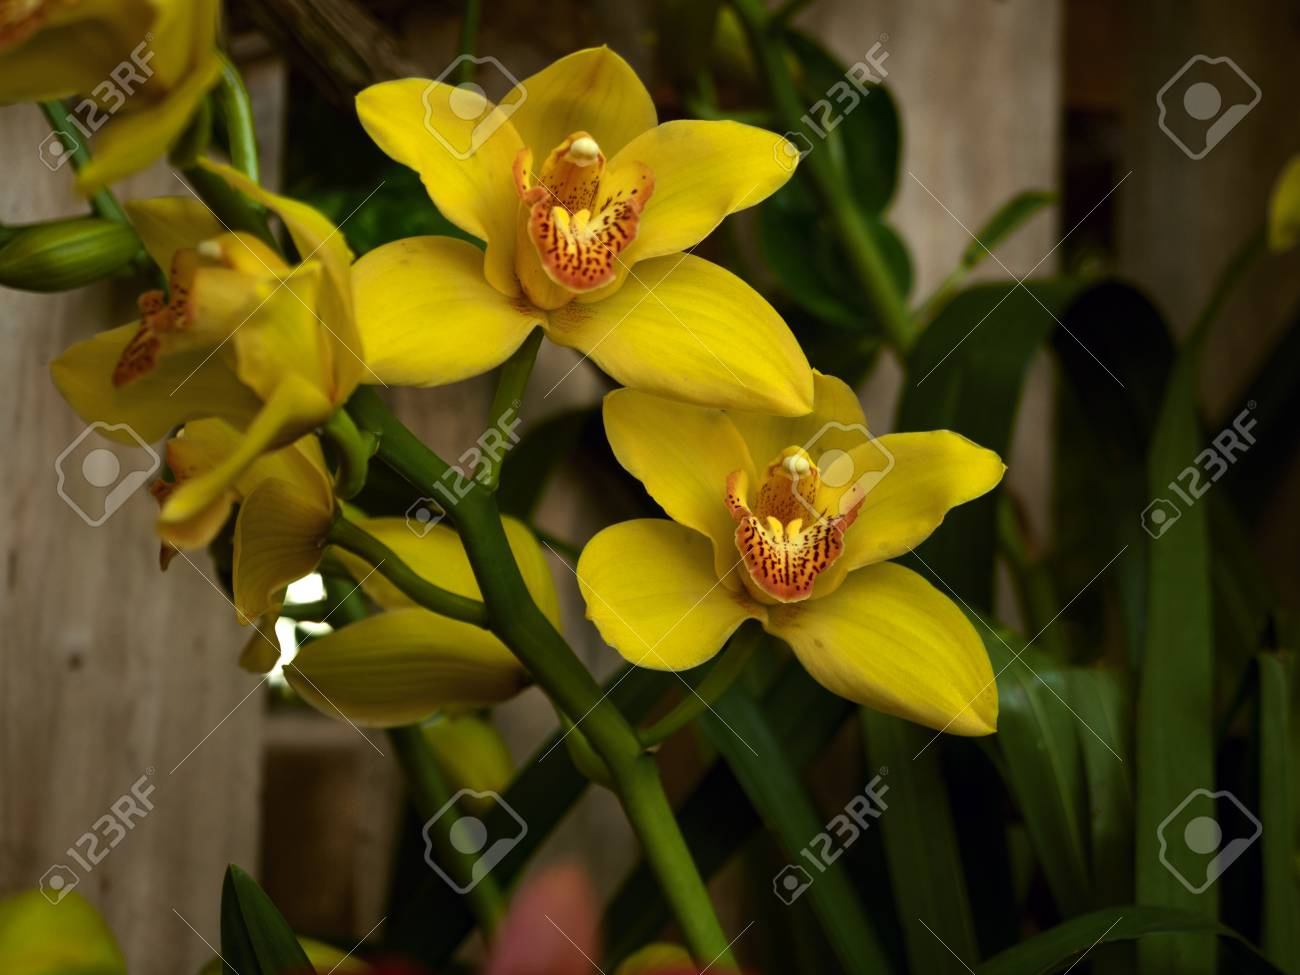 Streaked orchid flowers beautiful orchid flowers stock photo streaked orchid flowers beautiful orchid flowers stock photo 77670723 izmirmasajfo